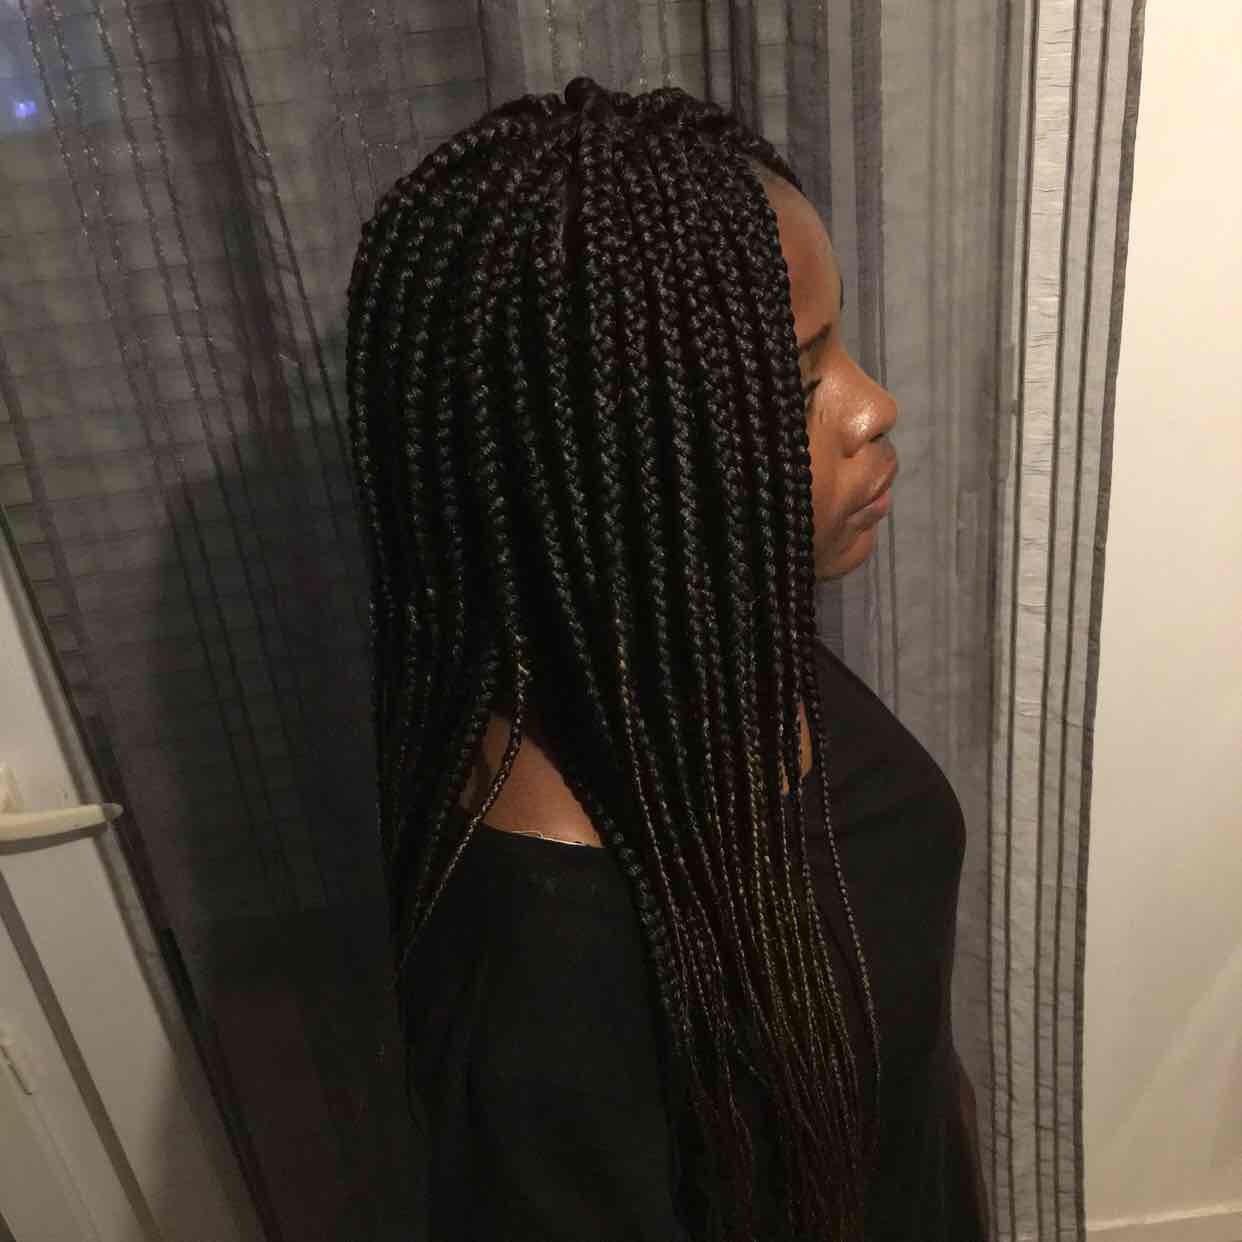 salon de coiffure afro tresse tresses box braids crochet braids vanilles tissages paris 75 77 78 91 92 93 94 95 ELBAJLLC